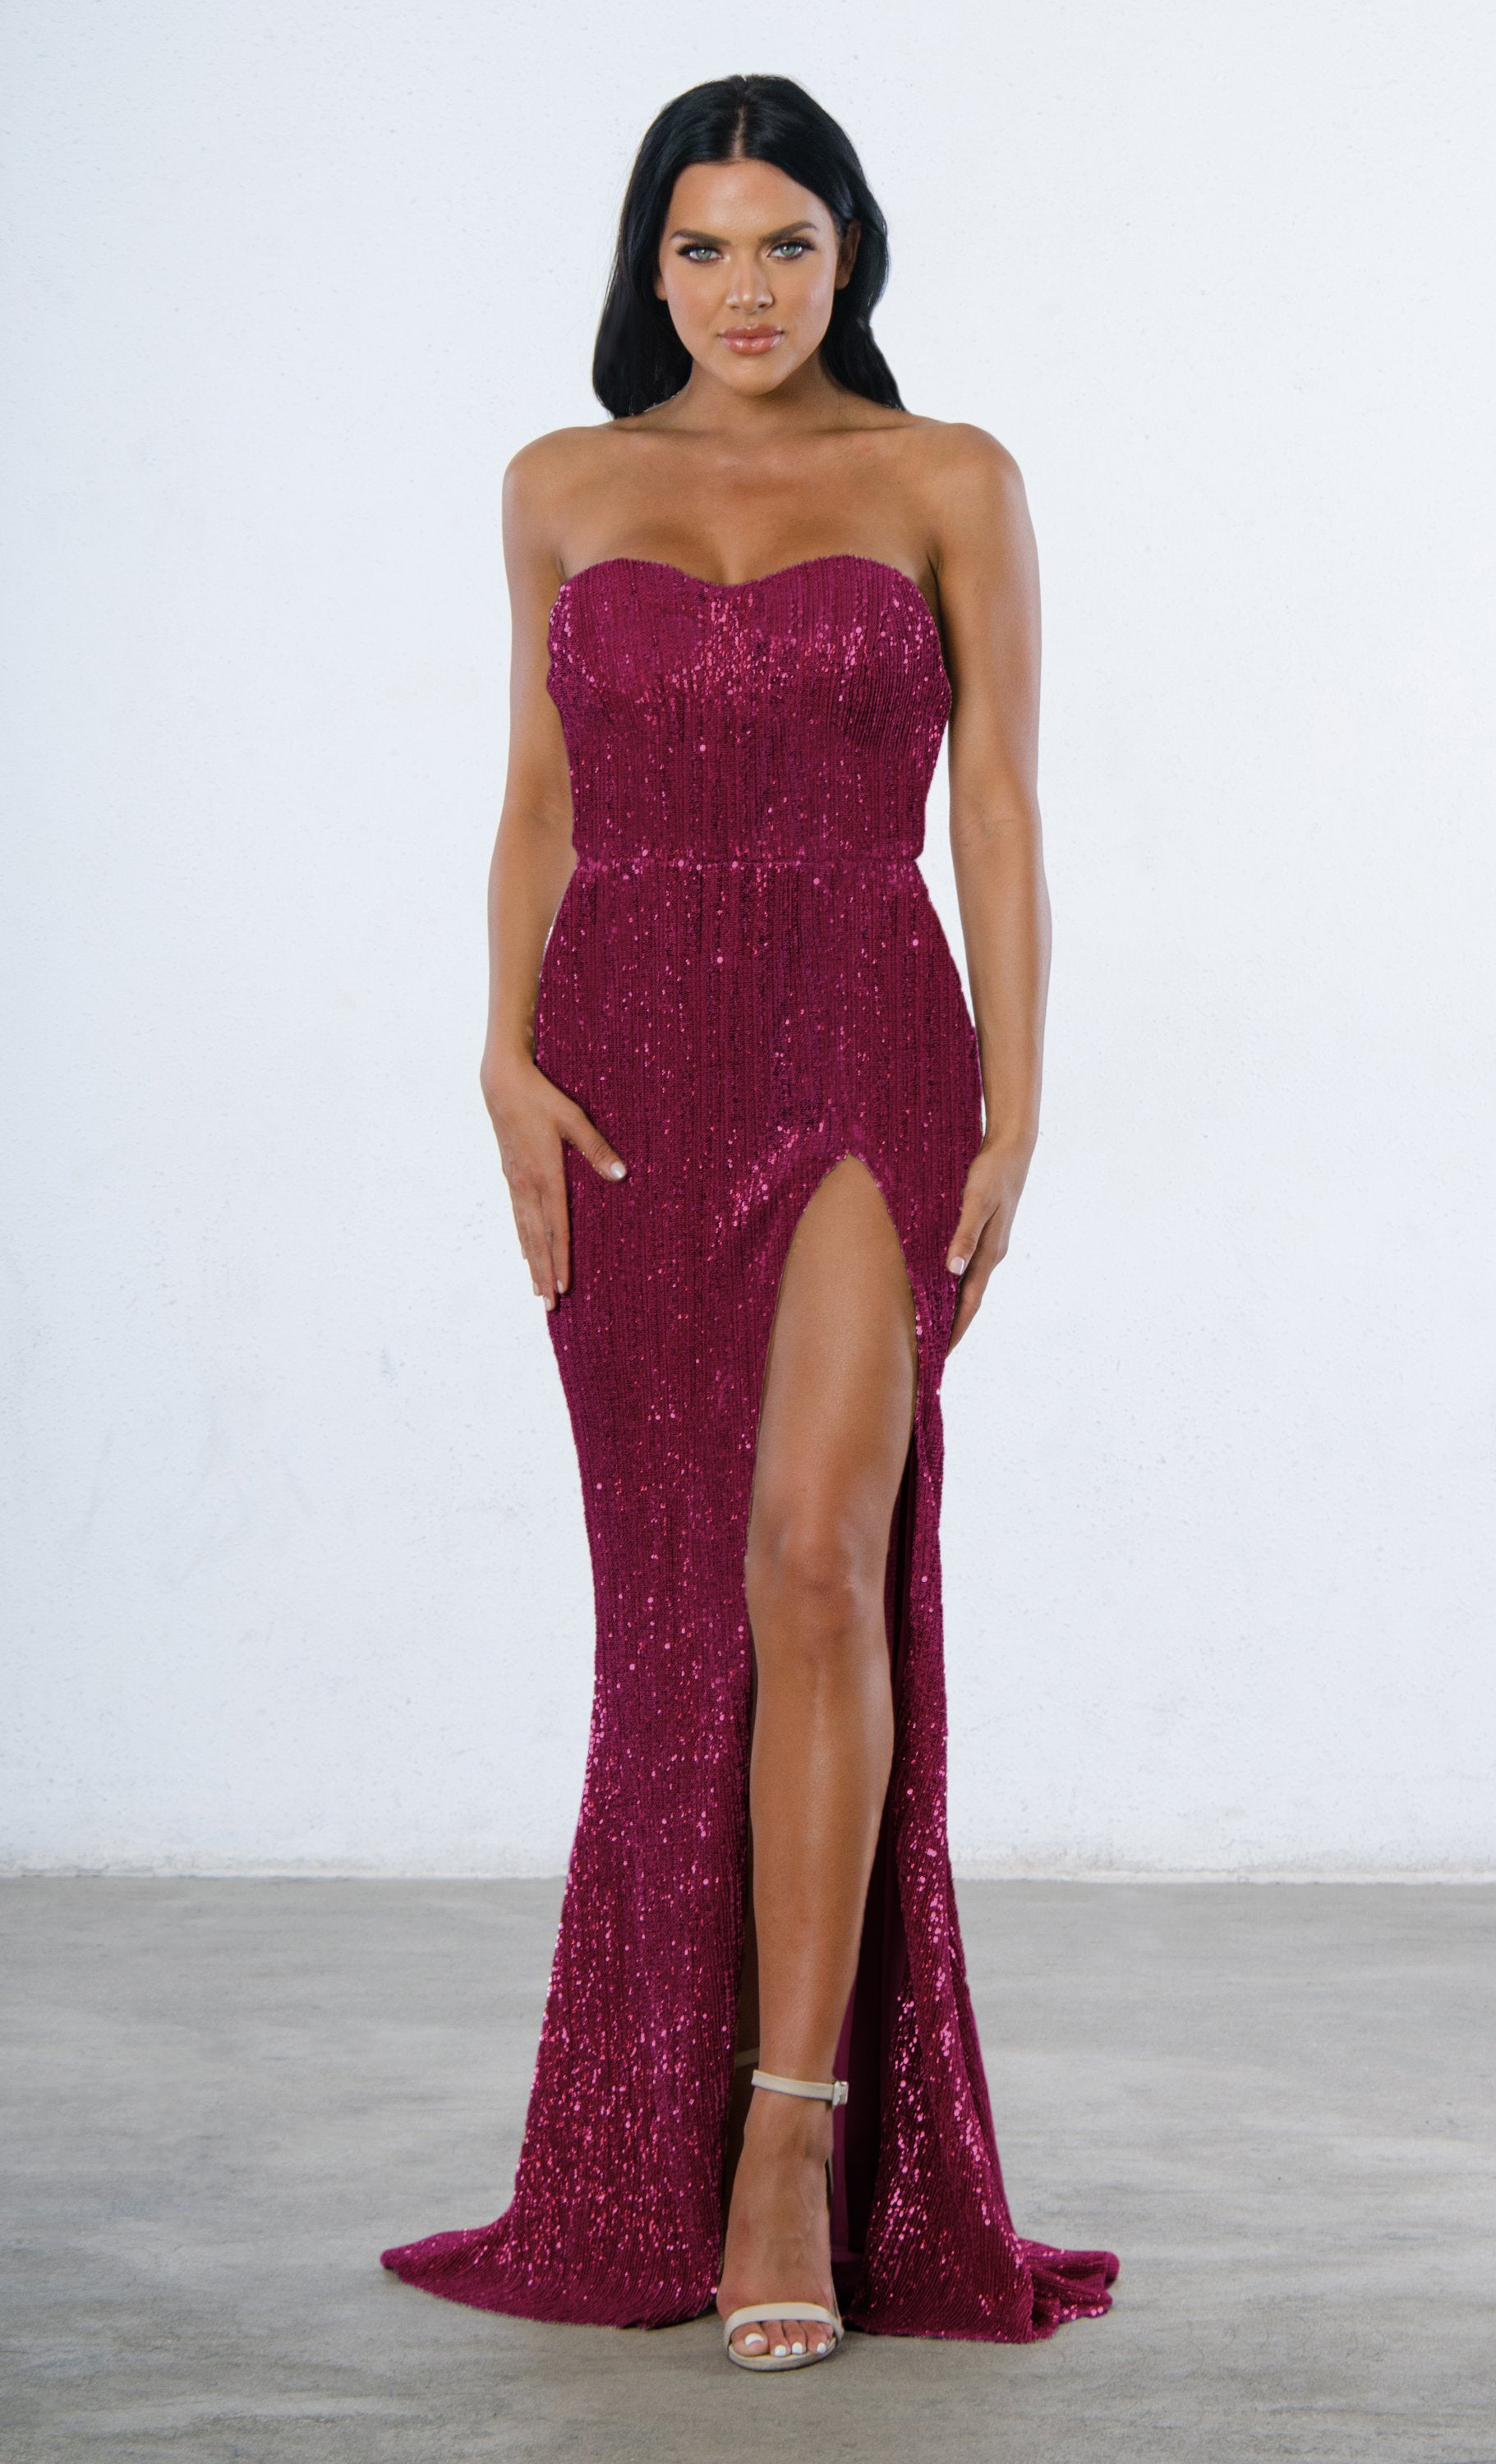 f21e86669ad0 Indie XO Show Me Some Love Burgundy Wine Red Sequin Strapless Sweetheart  Neck High Slit Fishtail